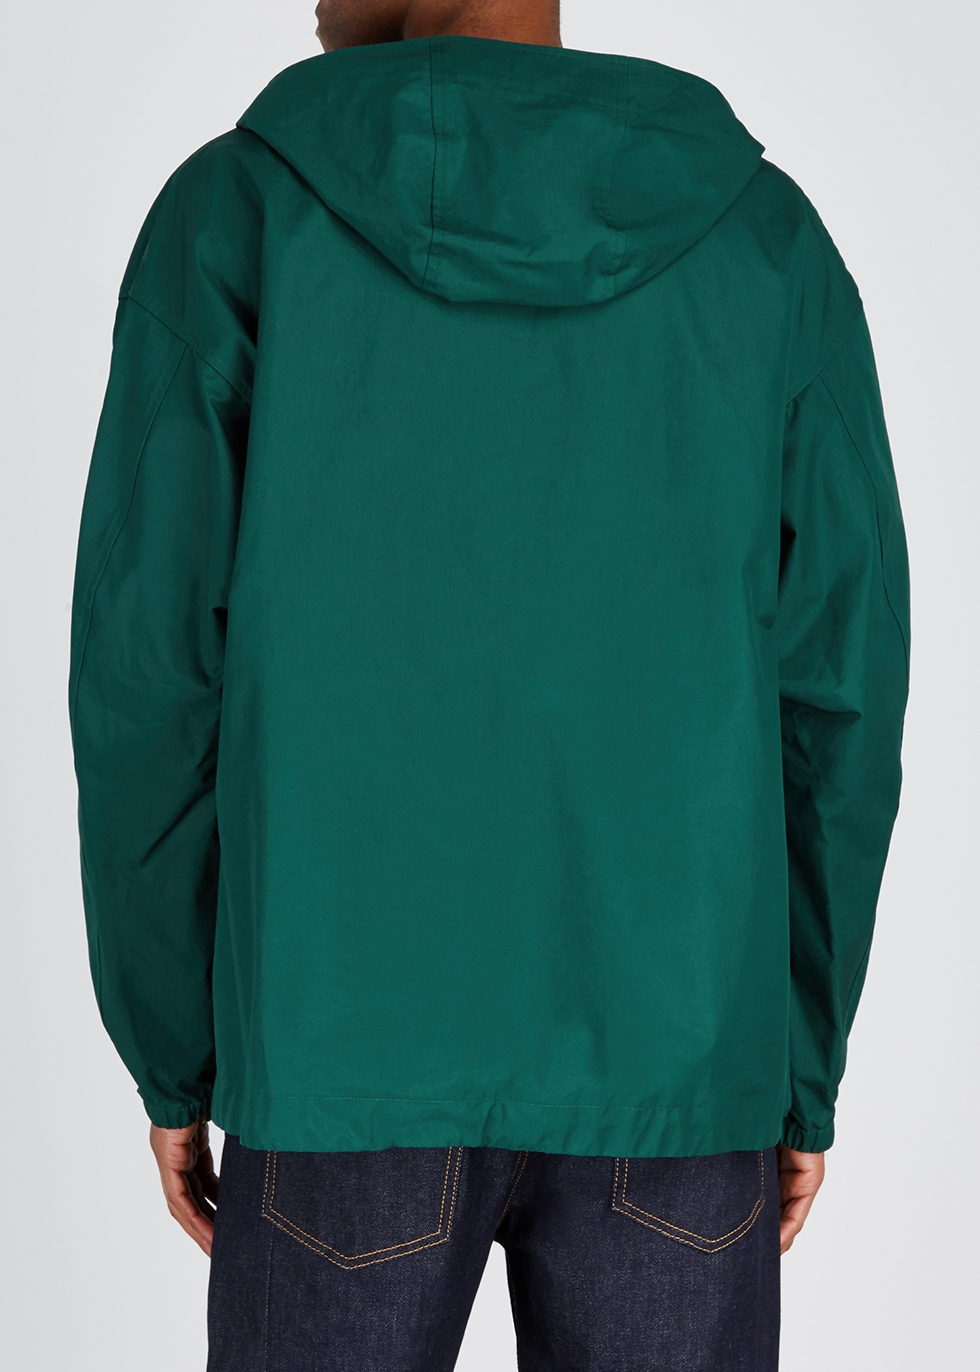 Green hooded cotton jacket - Gucci